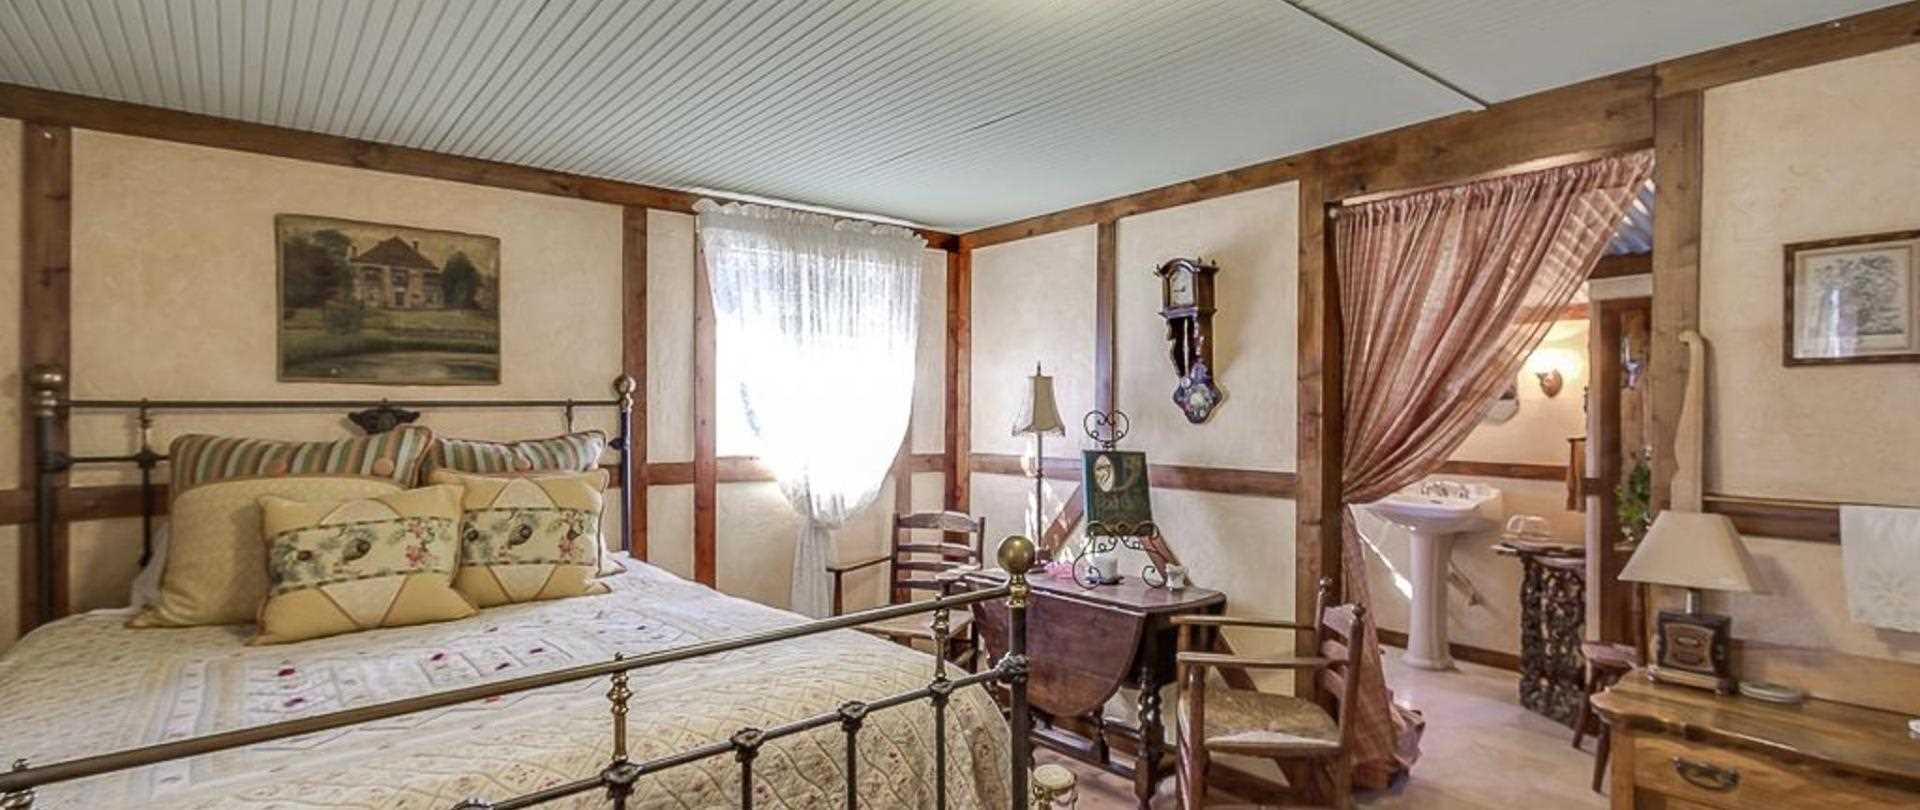 Antique furnishings and modern conveniences come together for an unforgettable romantic escape!